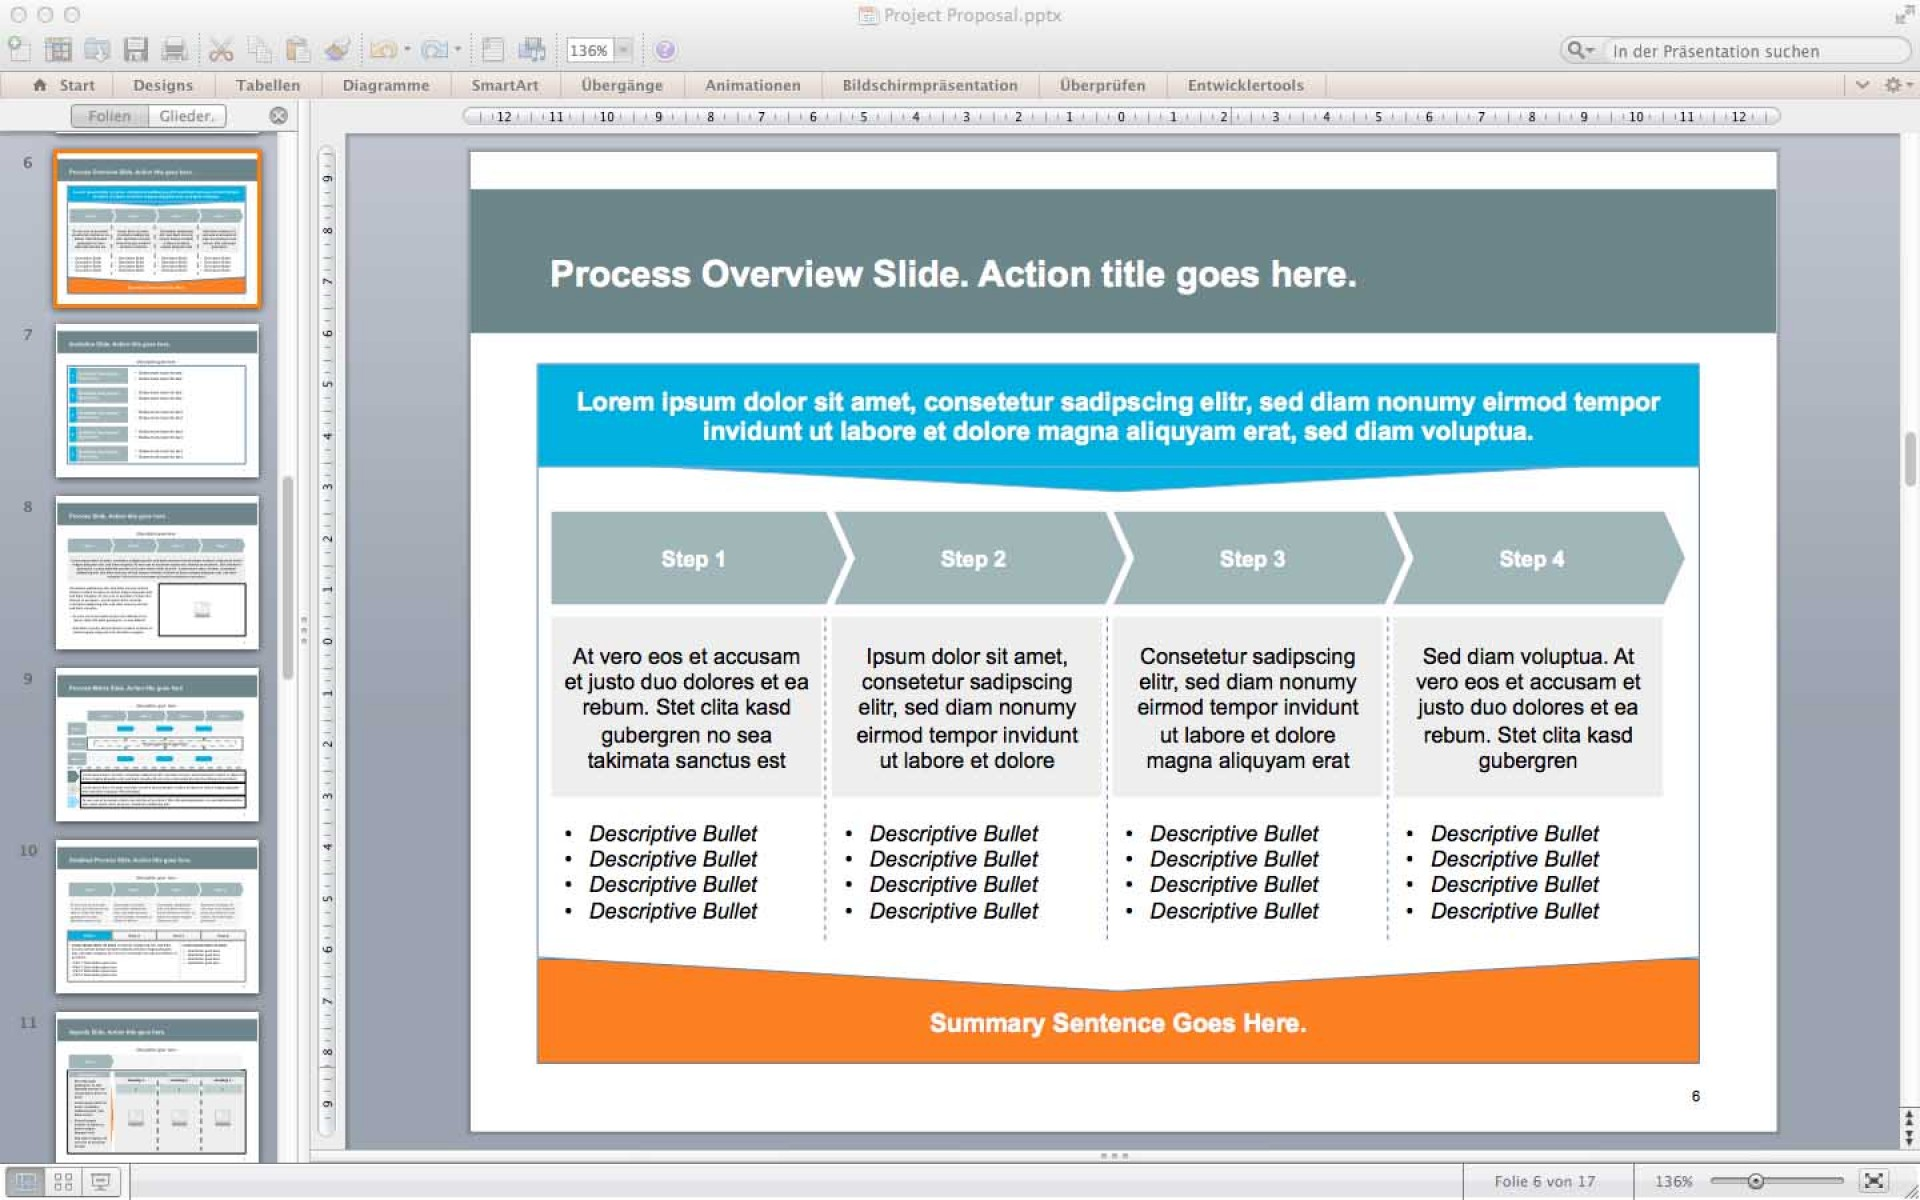 007 Powerpoint Presentation Format For Research Paper Project Proposal Template Templates Pro Mac Unique Sample Ppt 1920